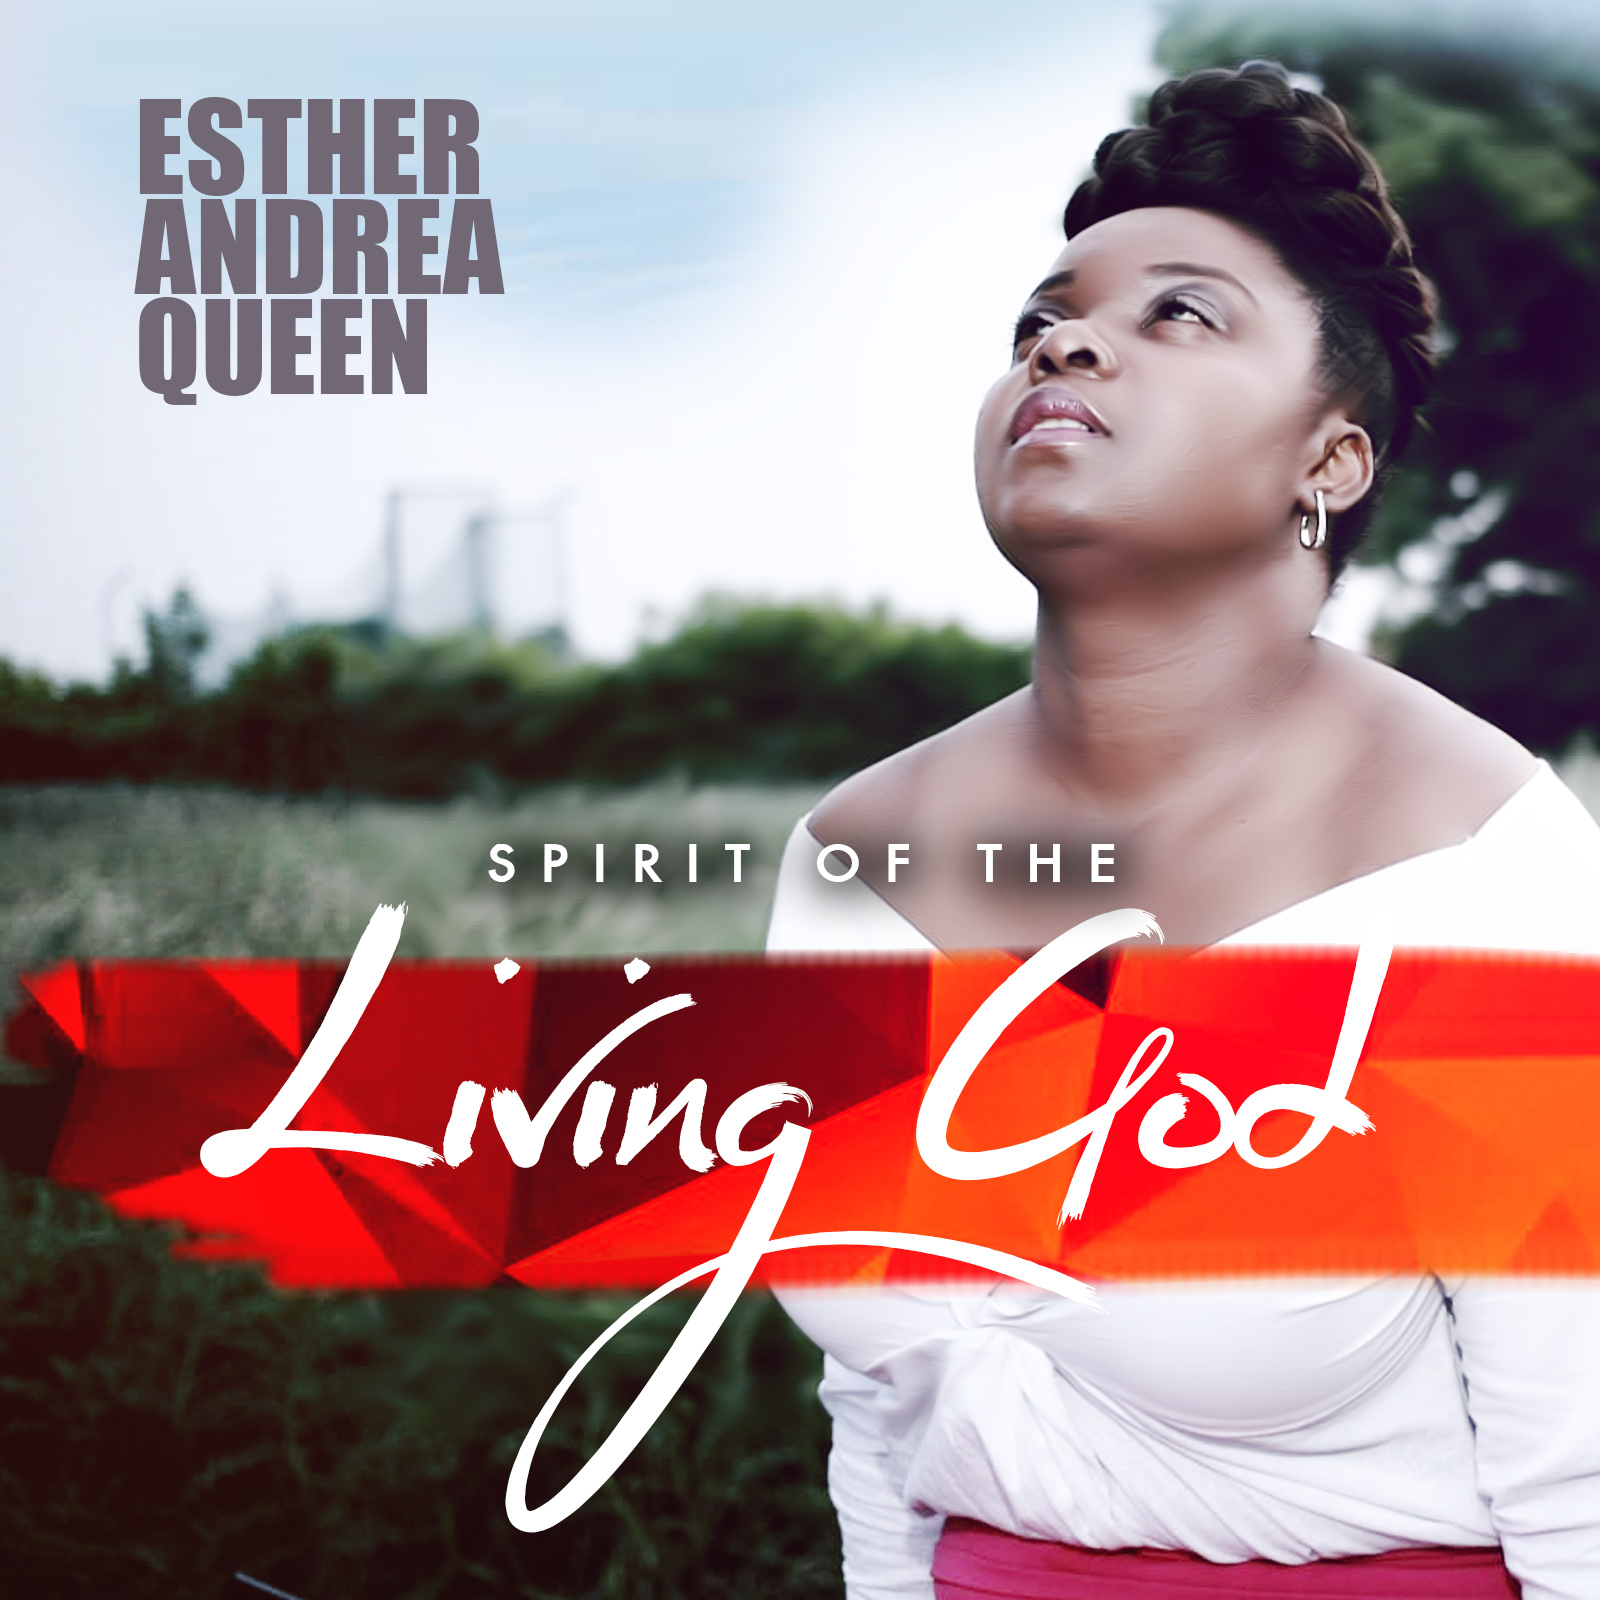 ESTHER ANDREA QUEEN - SPIRIT OF THE LIVING GOD | @ESTHERANDREAQU1